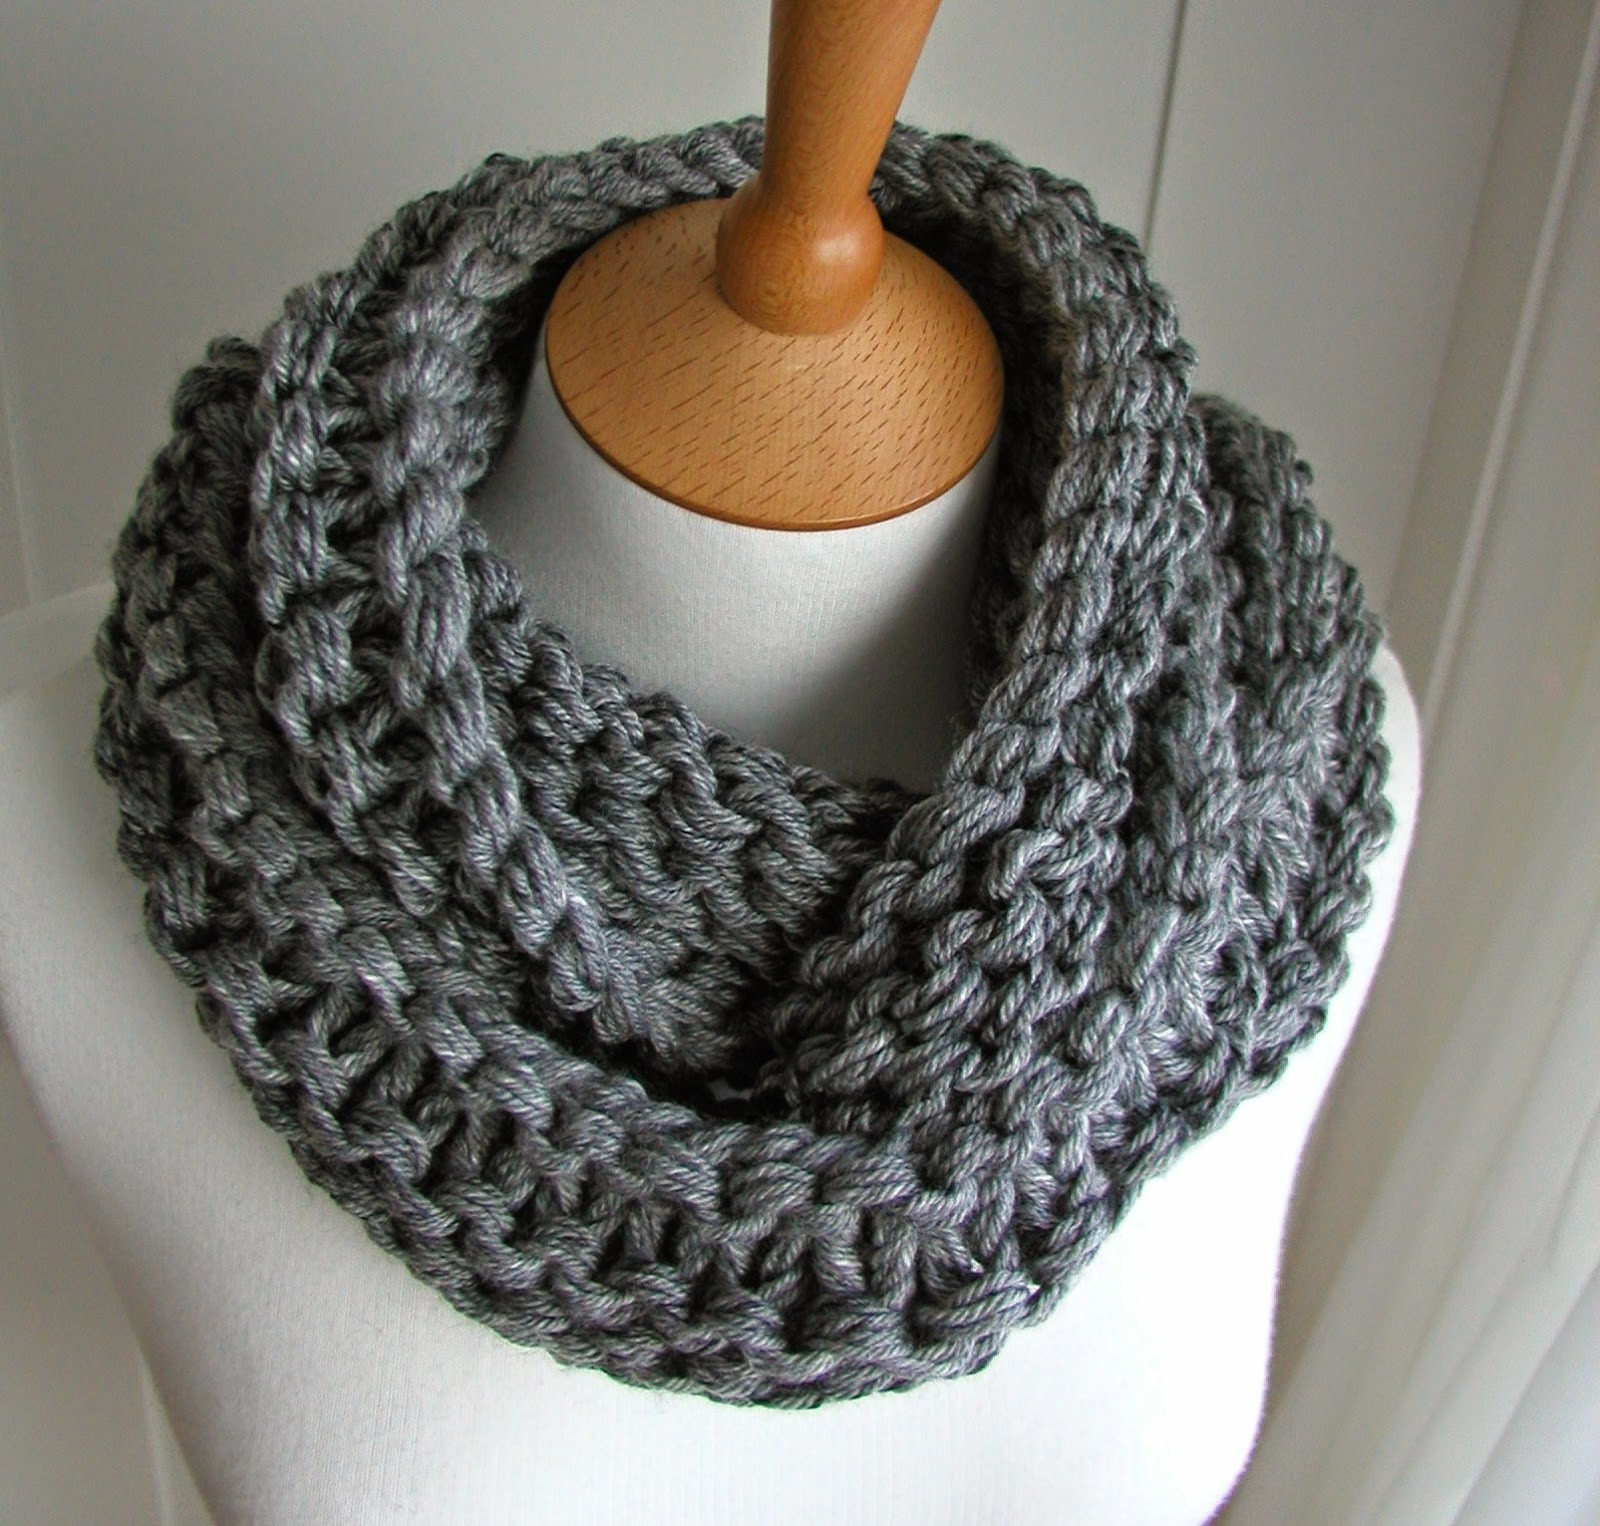 Awesome Hand Knitted Things Circular Scarf Free Pattern Free Chunky Knitting Patterns Of Brilliant 46 Ideas Free Chunky Knitting Patterns